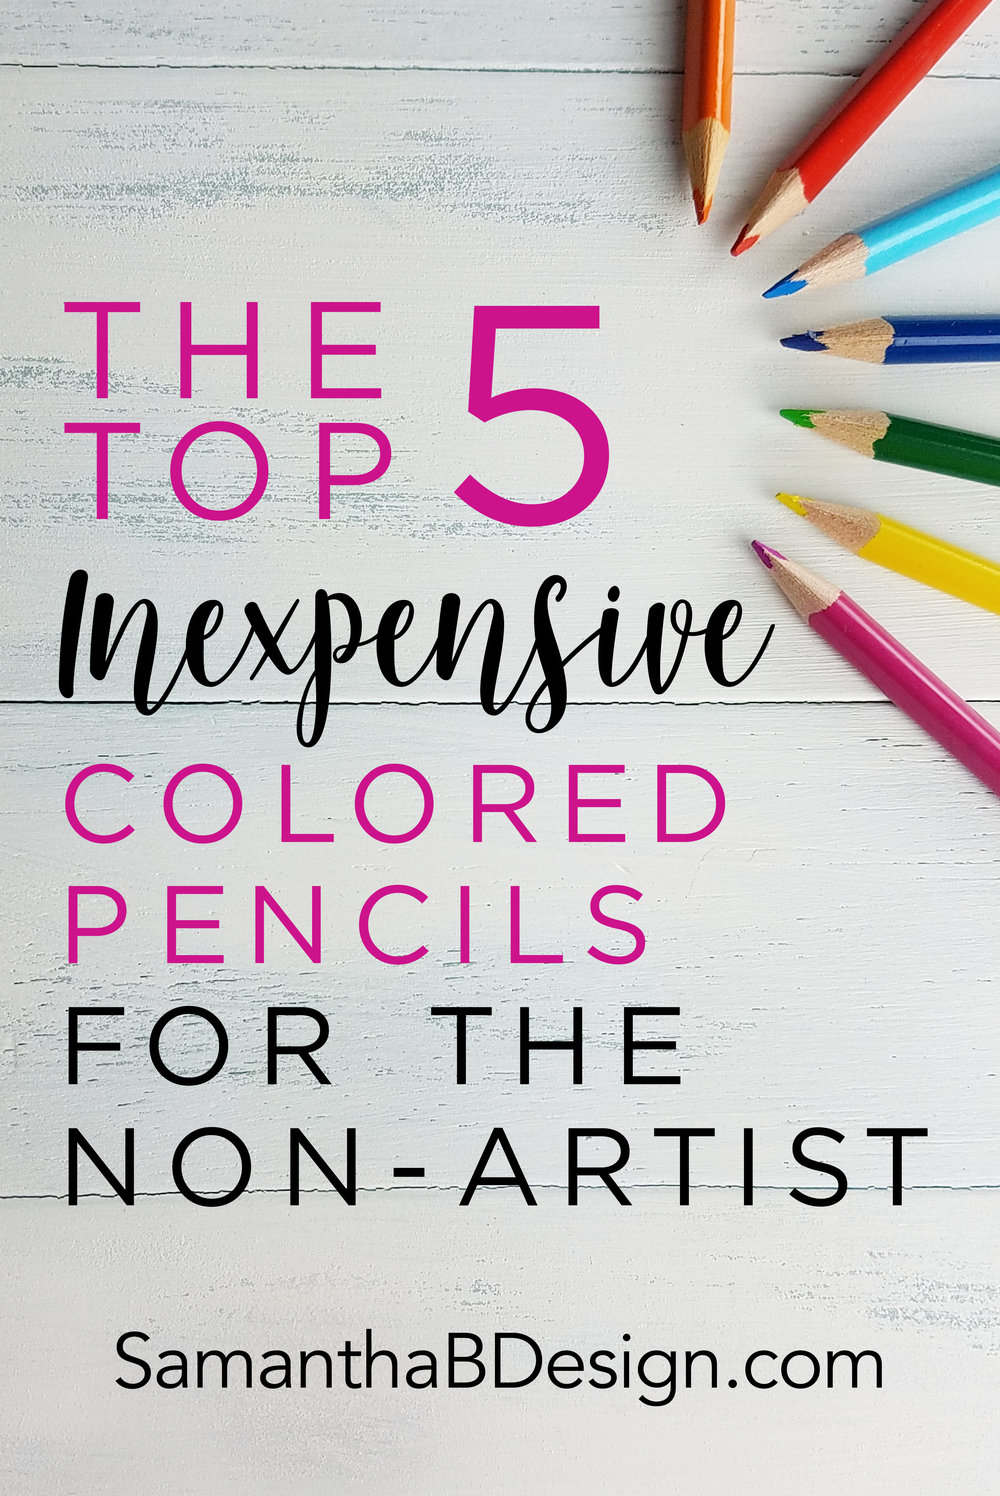 Top 5 Inexpensive Colored Pencils for the Non-Artistic Person